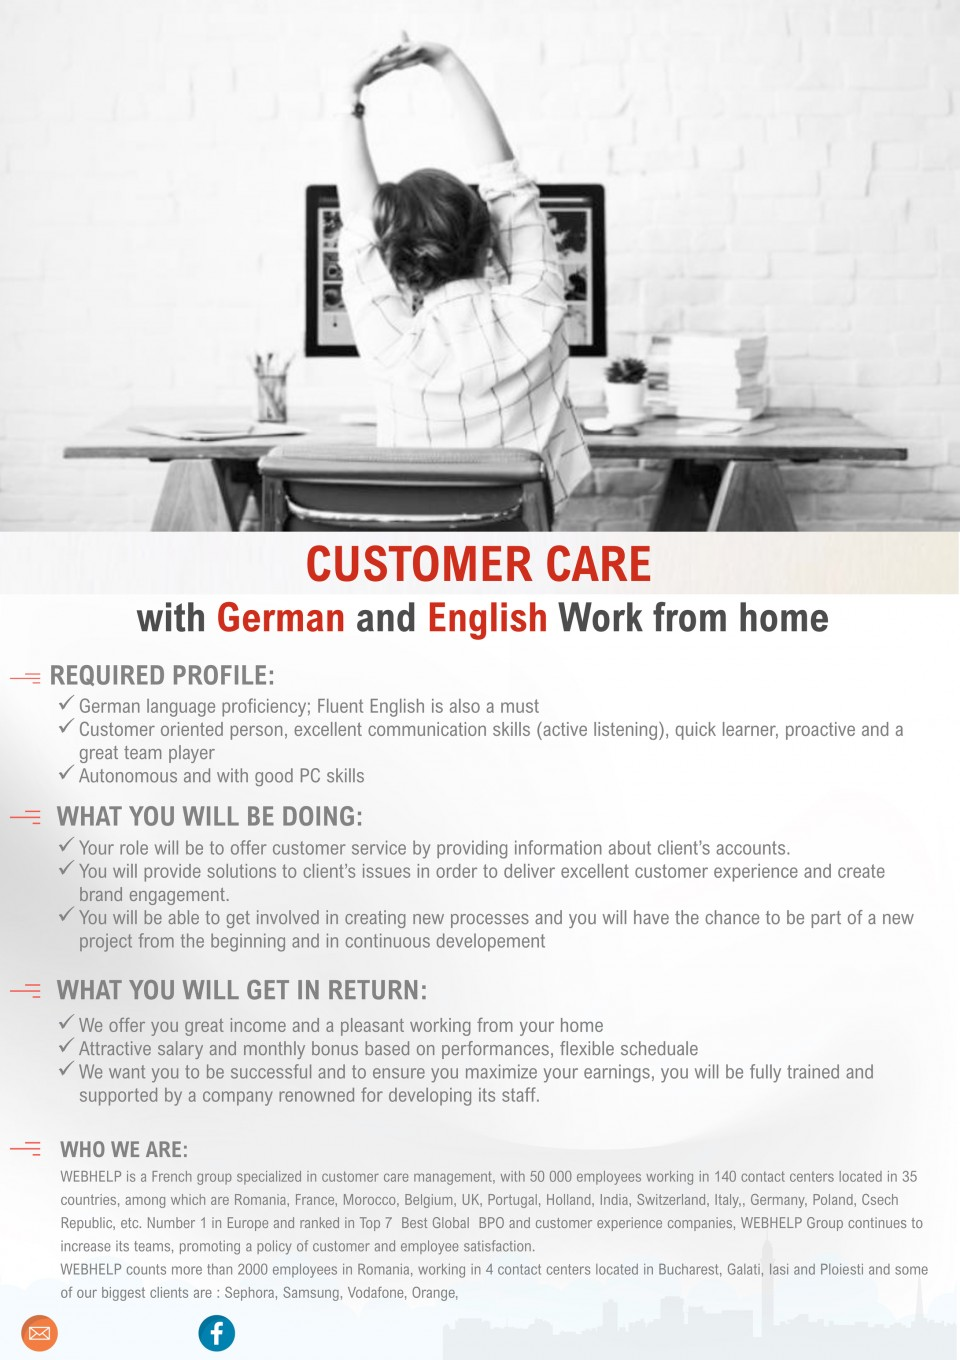 CUSTOMER CARE with German and English Work from home consilier clienti, customer support, german, work from home, english  REQUIRED PROFILE: ✓German language proficiency; Fluent English is also a must ✓Customer oriented person, excellent communication skills (active listening), quick learner, proactive and a great team player ✓Autonomous and with good PC skills WHAT YOU WILL BE DOING: ✓Your role will be to offer customer service by providing information about client's accounts. ✓You will provide solutions to client's issues in order to deliver excellent customer experience and create brand engagement. ✓You will be able to get involved in creating new processes and you will have the chance to be part of a new project from the beginning and in continuous developement WHAT YOU WILL GET IN RETURN: ✓We offer you great income and a pleasant working from your home ✓Attractive salary and monthly bonus based on performances, flexible scheduale ✓We want you to be successful and to ensure you maximize your earnings, you will be fully trained and supported by a company renowned for developing its staff. WHO WE ARE: WEBHELP is a French group specialized in customer care management, with 50 000 employees working in 140 contact centers located in 35 countries, among which are Romania, France, Morocco, Belgium, UK, Portugal, Holland, India, Switzerland, Italy,, Germany, Poland, Csech Republic, etc. Number 1 in Europe and ranked in Top 7  Best Global  BPO and customer experience companies, WEBHELP Group continues to increase its teams, promoting a policy of customer and employee satisfaction. WEBHELP counts more than 2000 employees in Romania, working in 4 contact centers located in Bucharest, Galati, Iasi and Ploiesti and some of our biggest clients are : Sephora, Samsung, Vodafone, Orange,